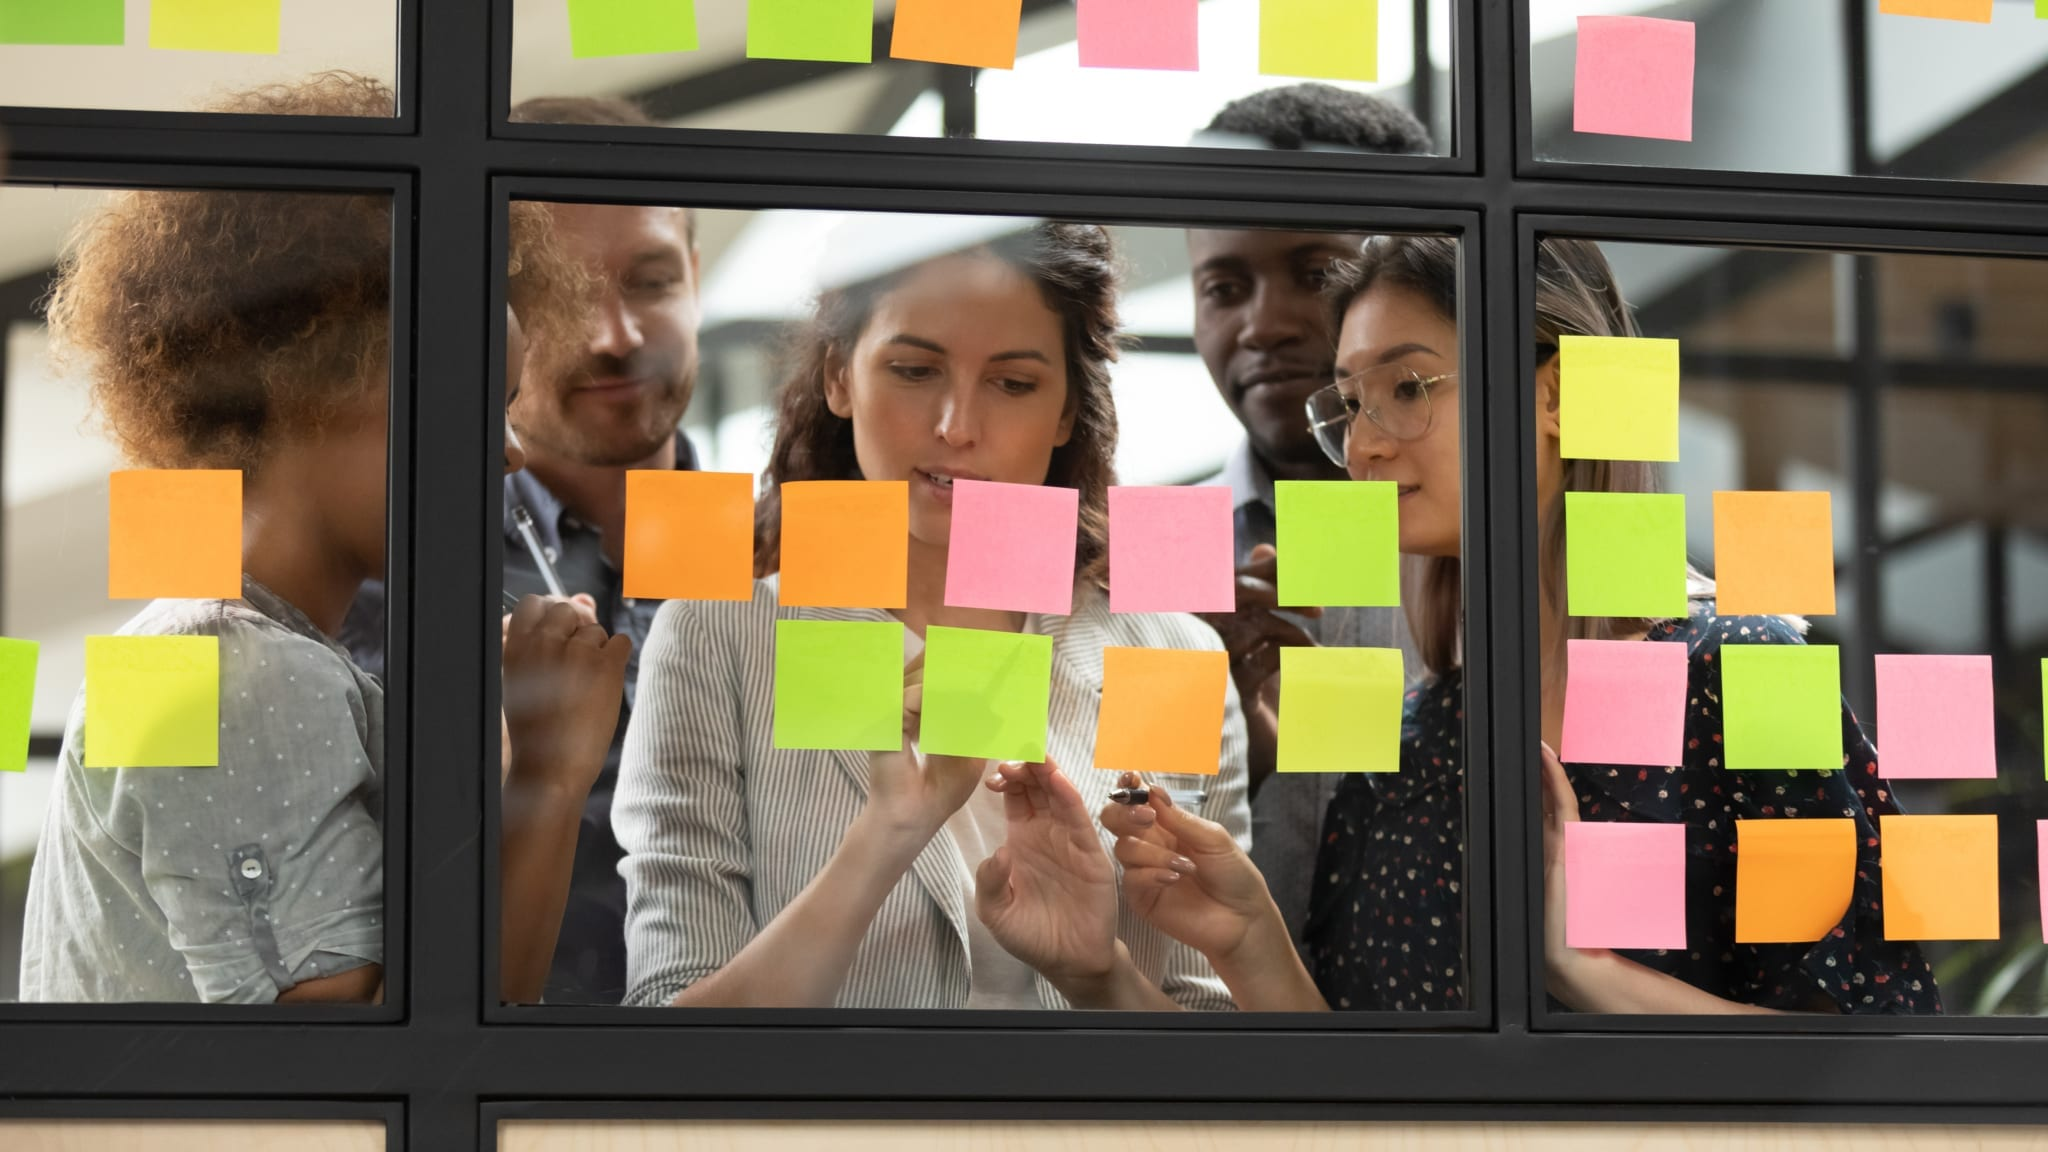 Developing an Agile Mindset